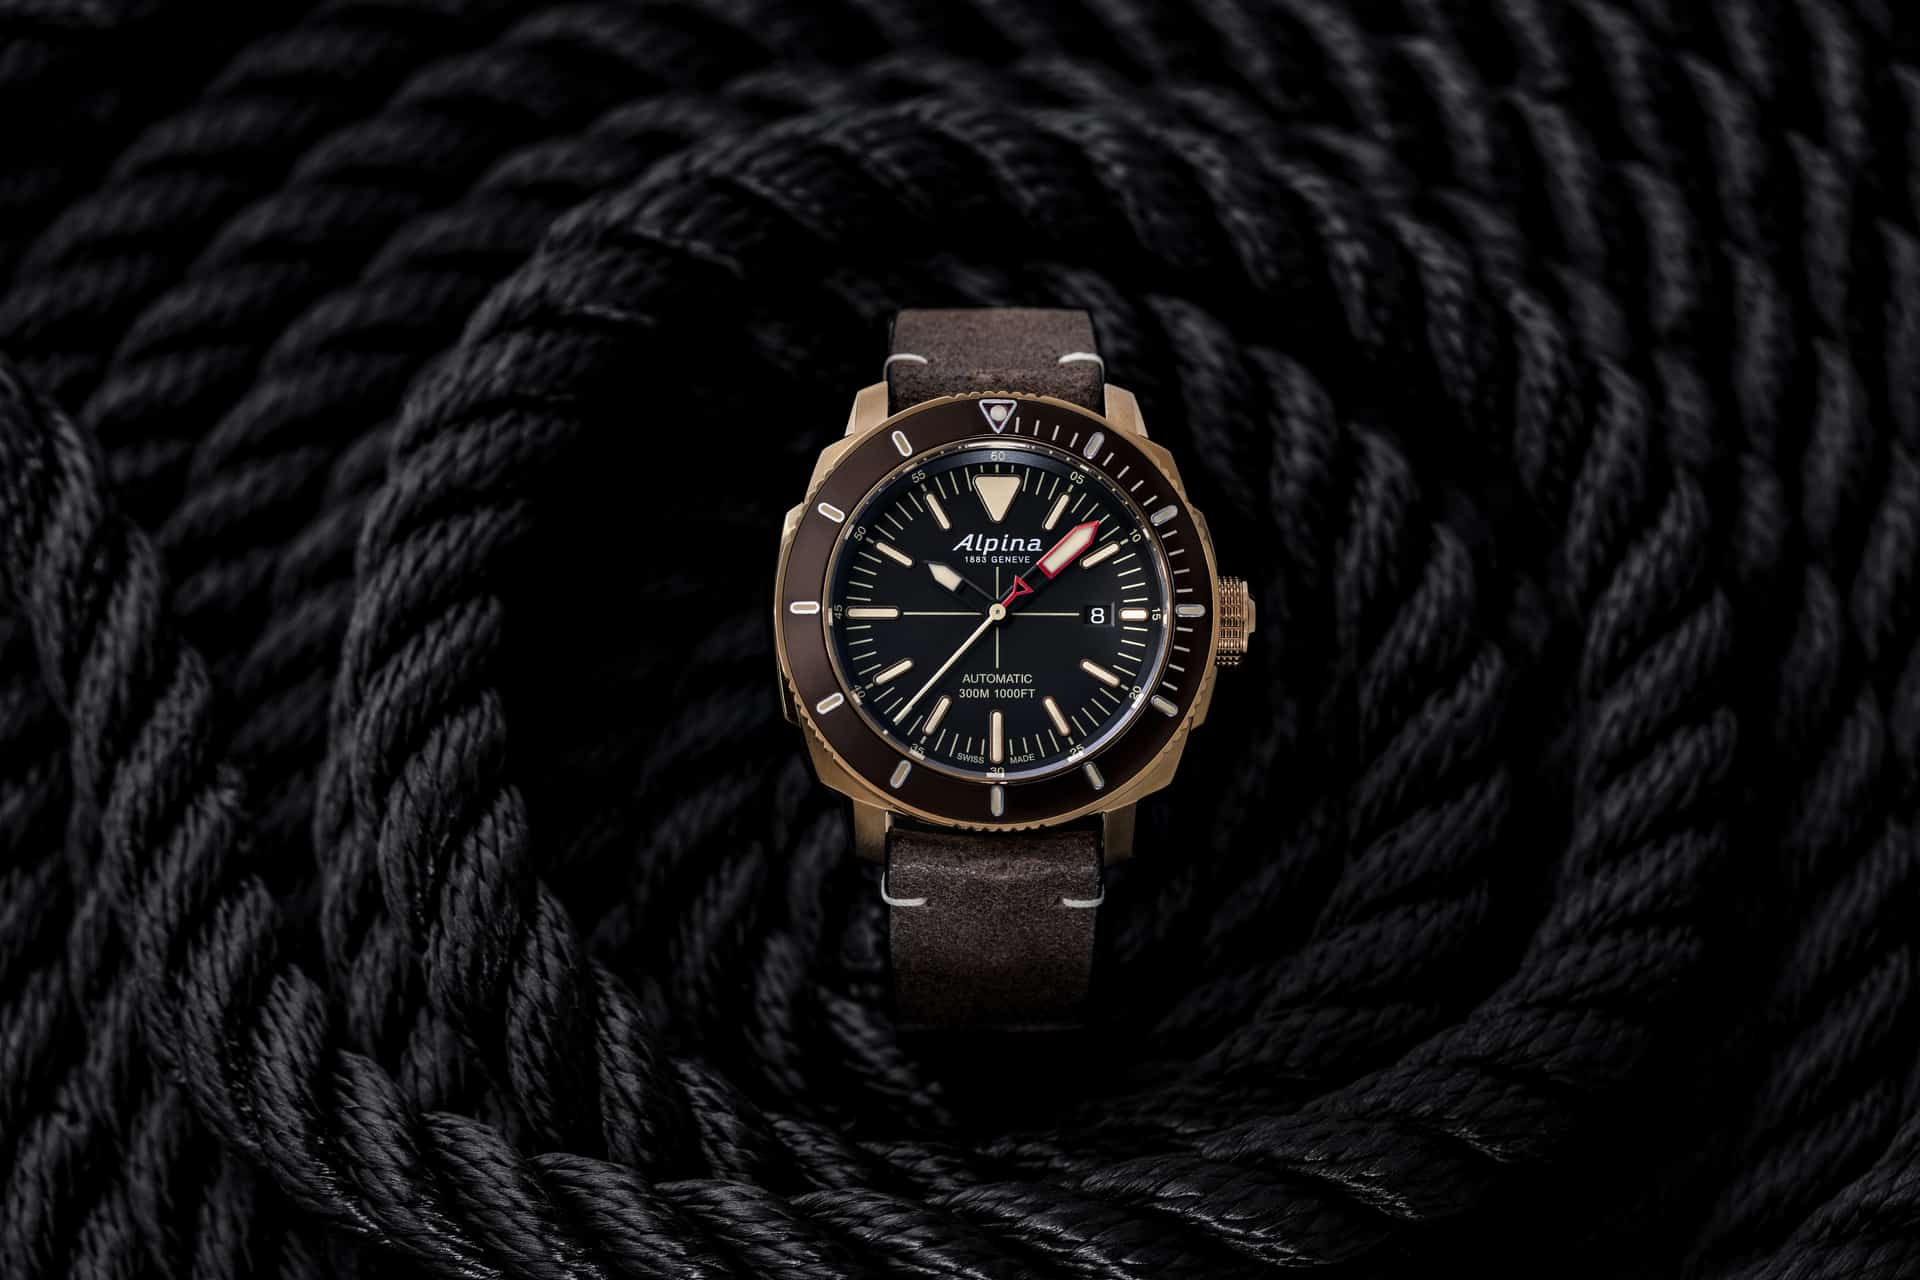 Alpina's diving history goes on with the new Seastrong Diver 300